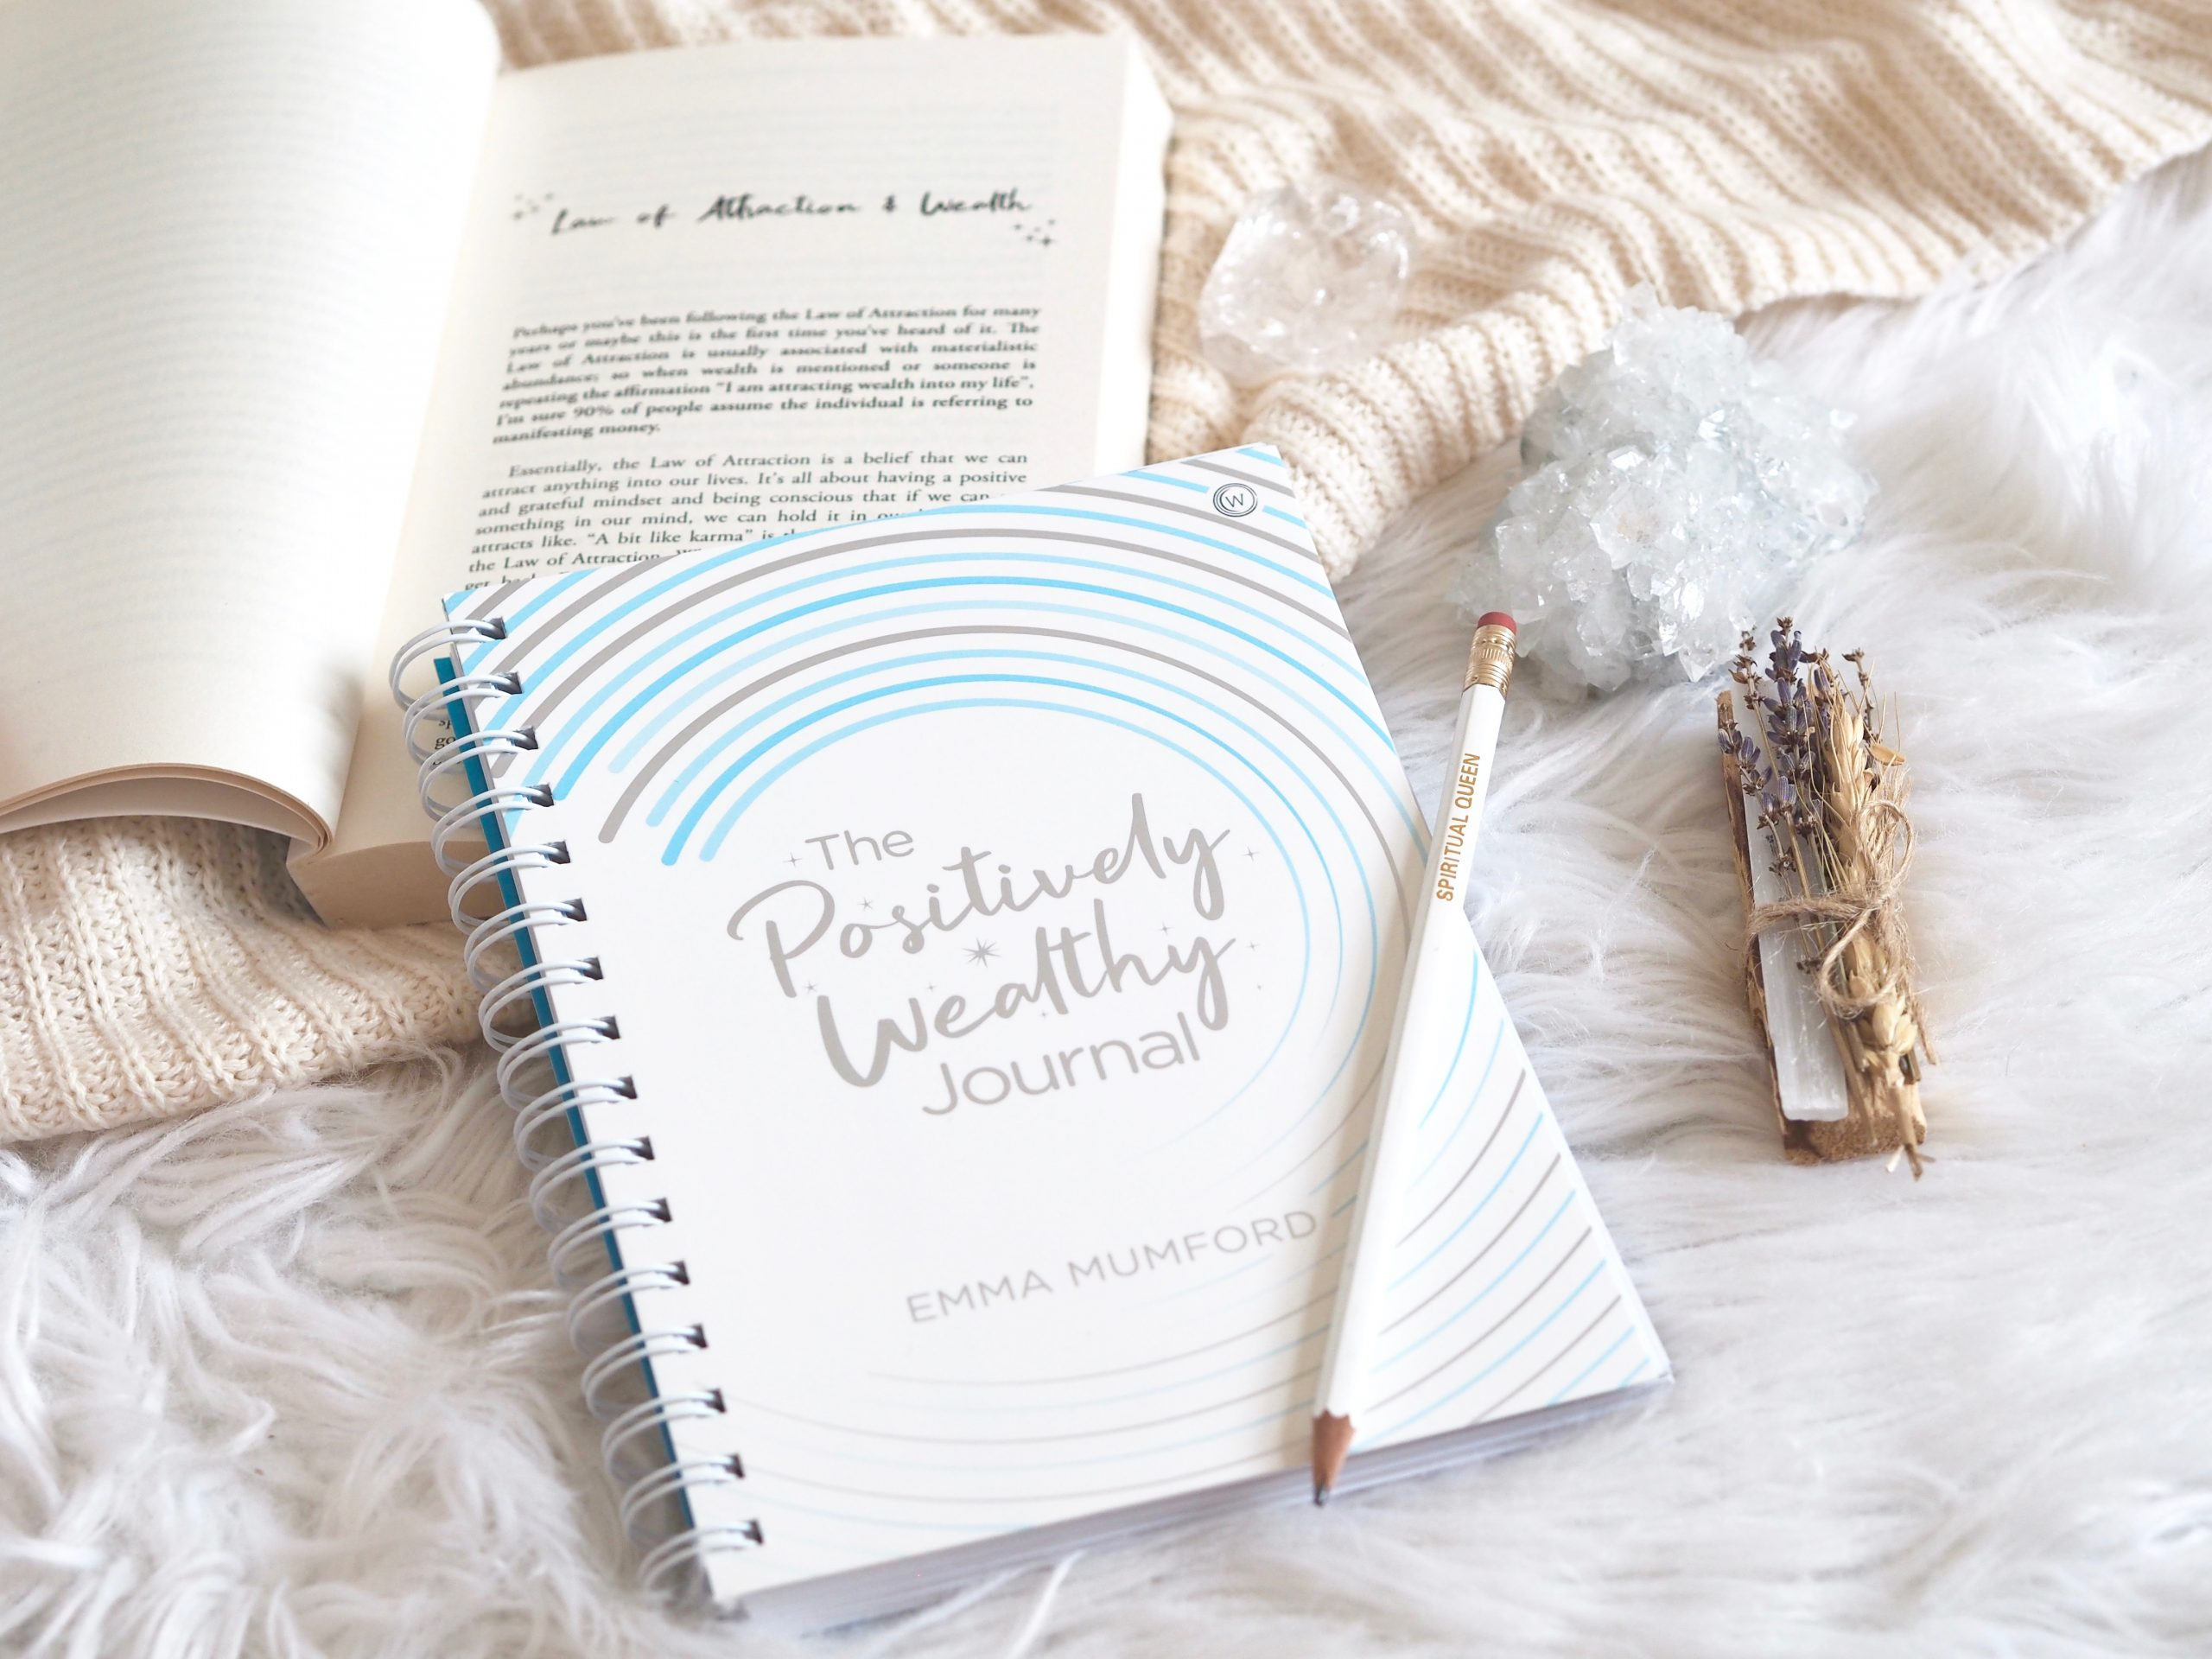 The Positively Wealthy Journal by Emma Mumford